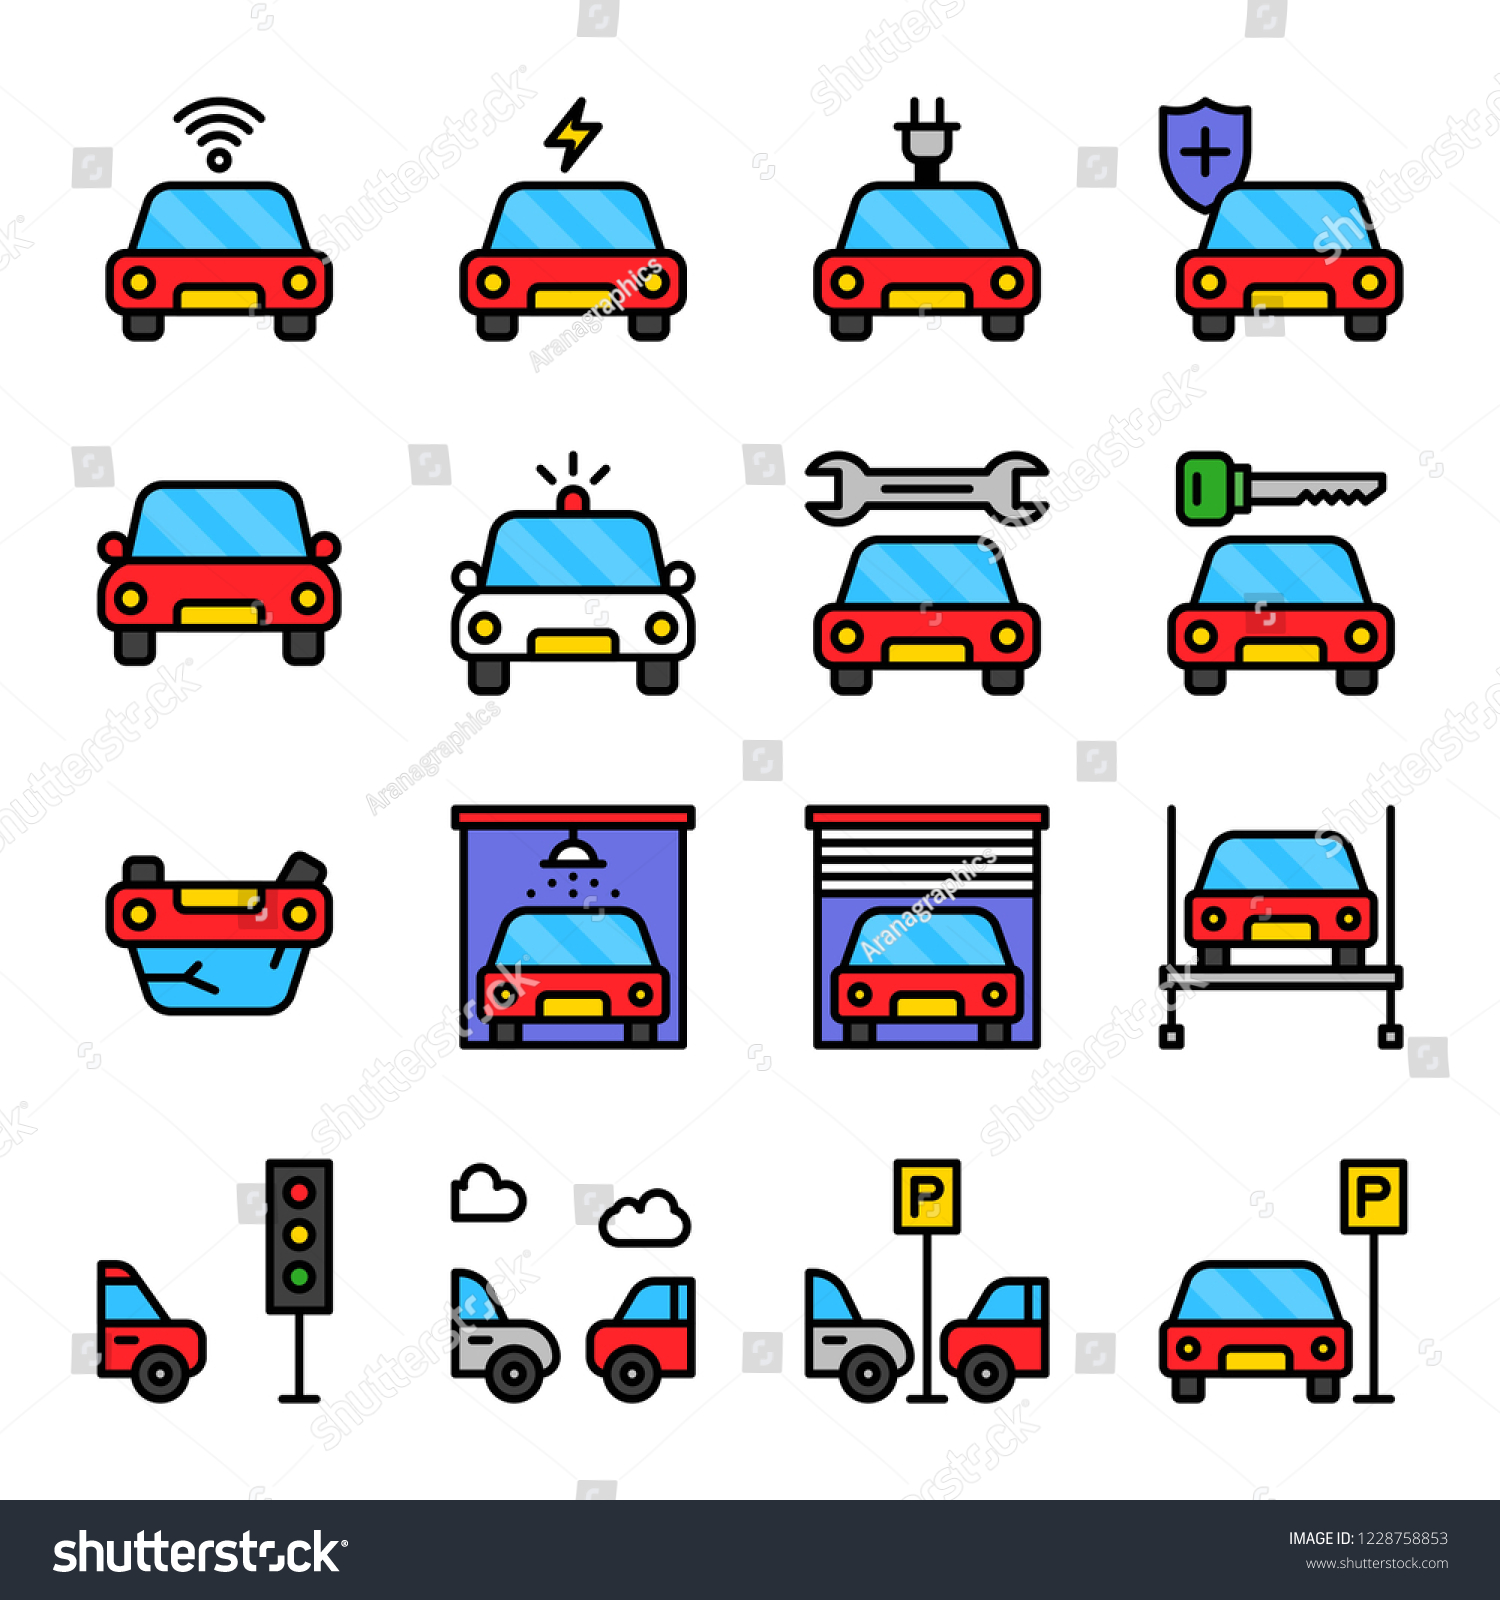 Set Cars Related Filled Outline Icon Stock Vector (Royalty Free